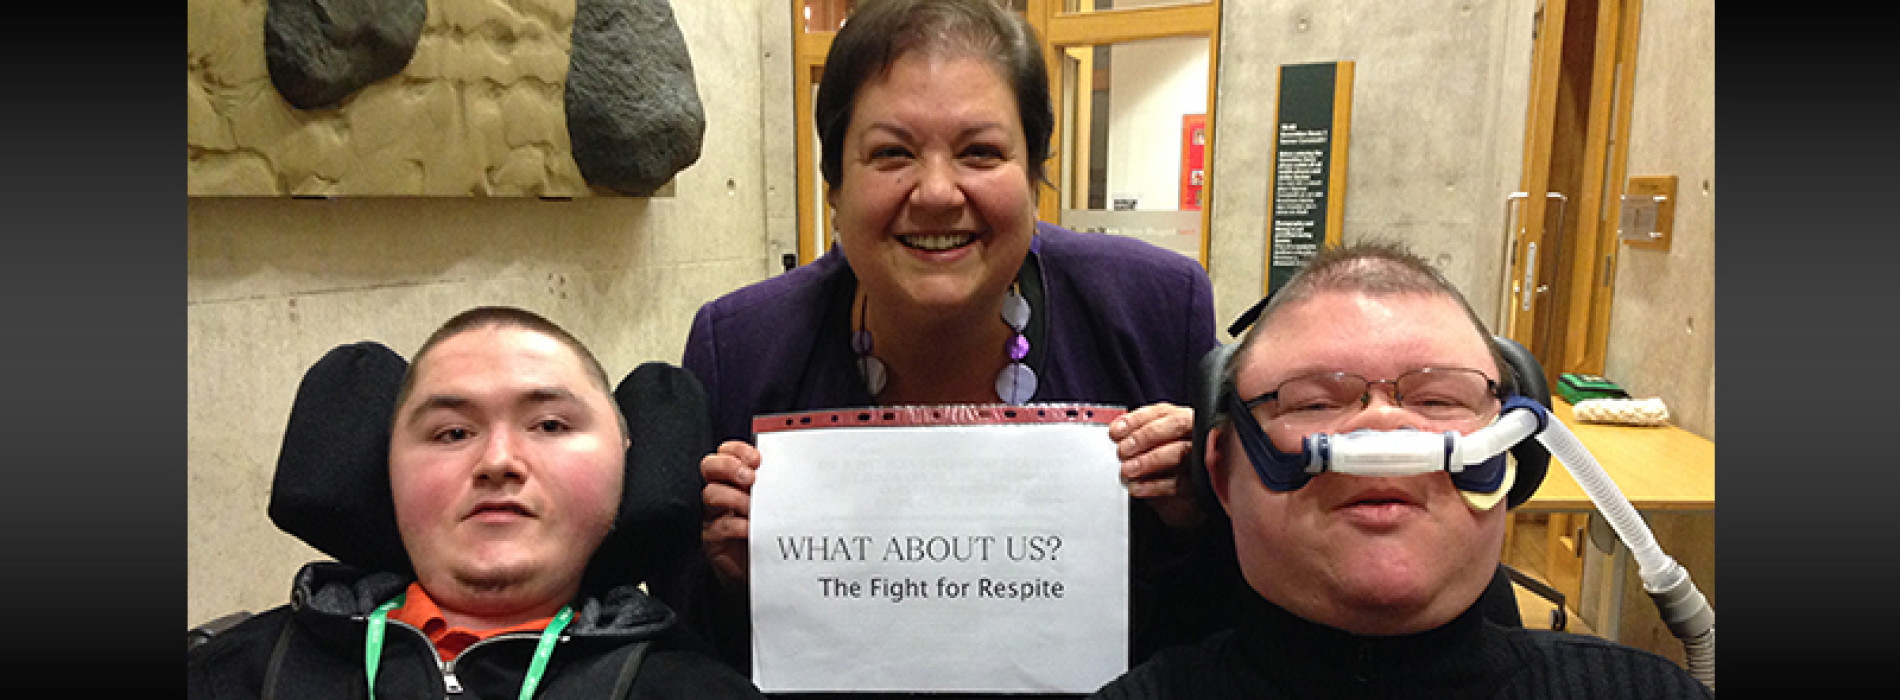 Making waves: taking the adult respite campaign to Parliament